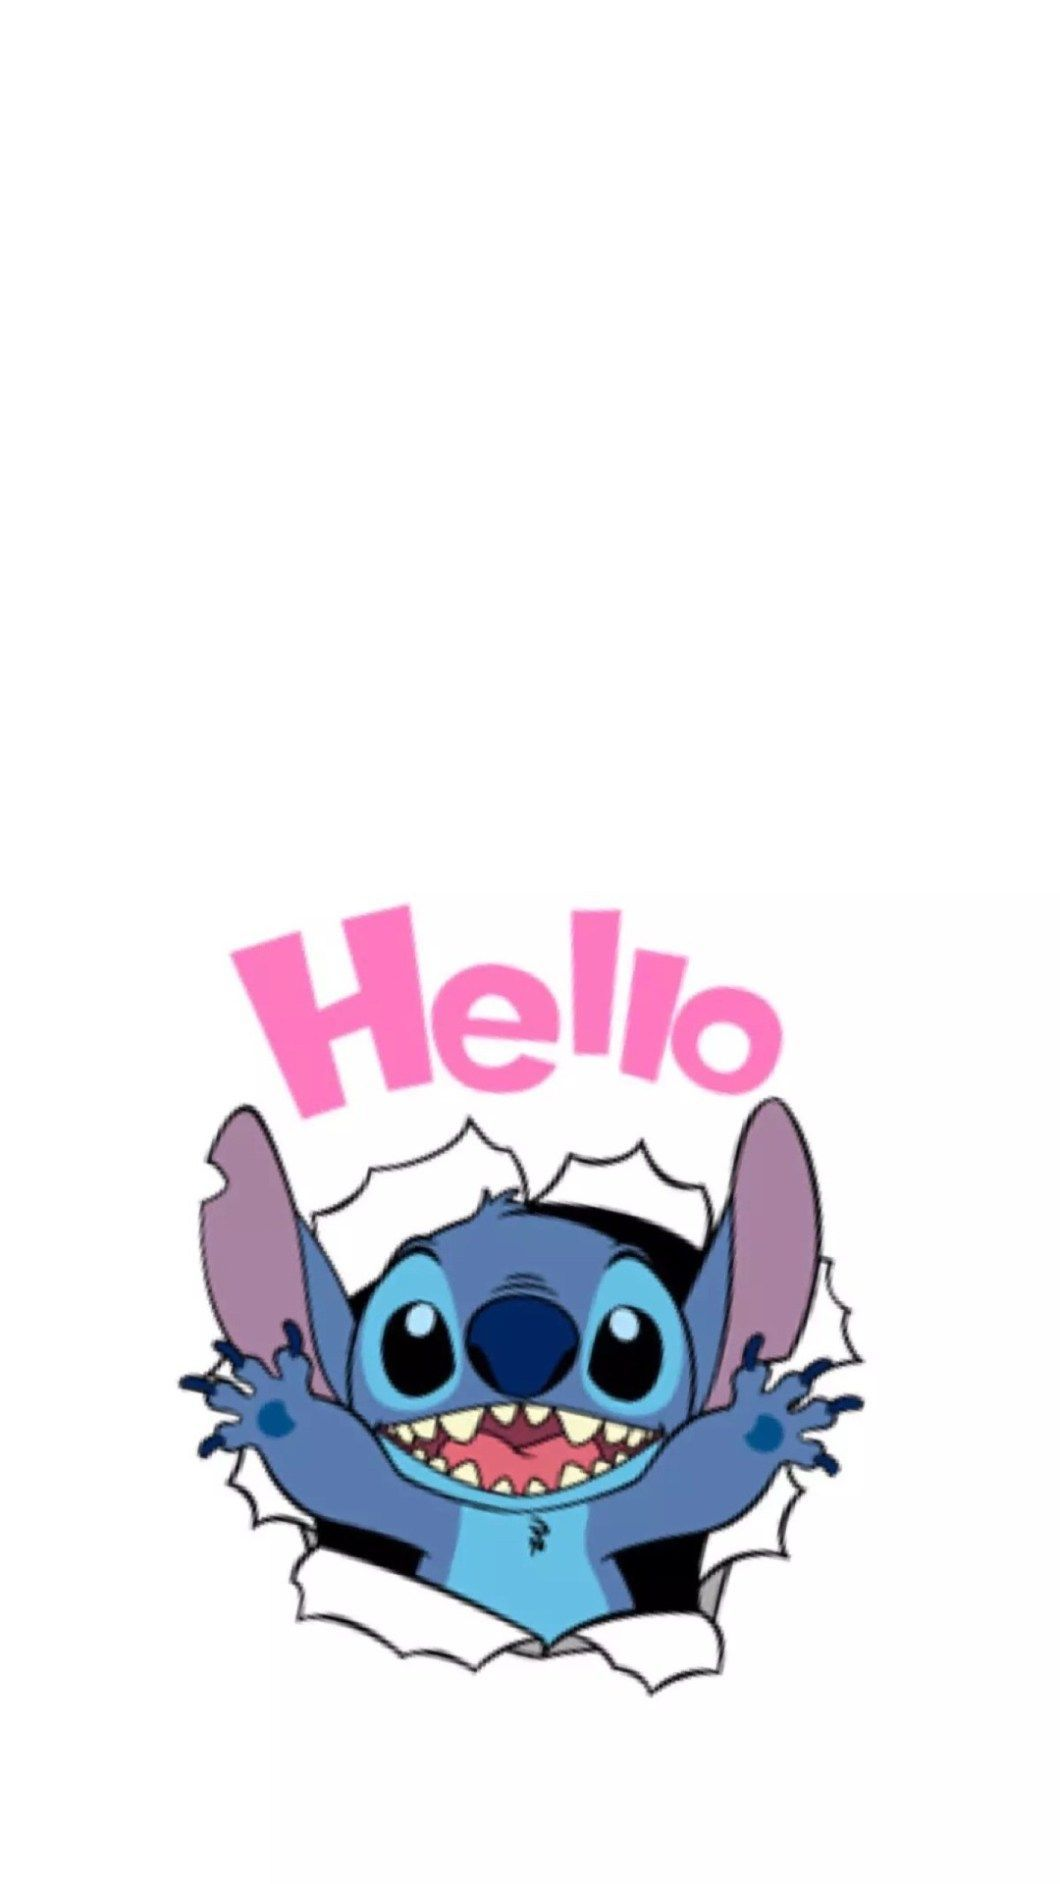 Cute Stitch iPhone Wallpapers - Top ...